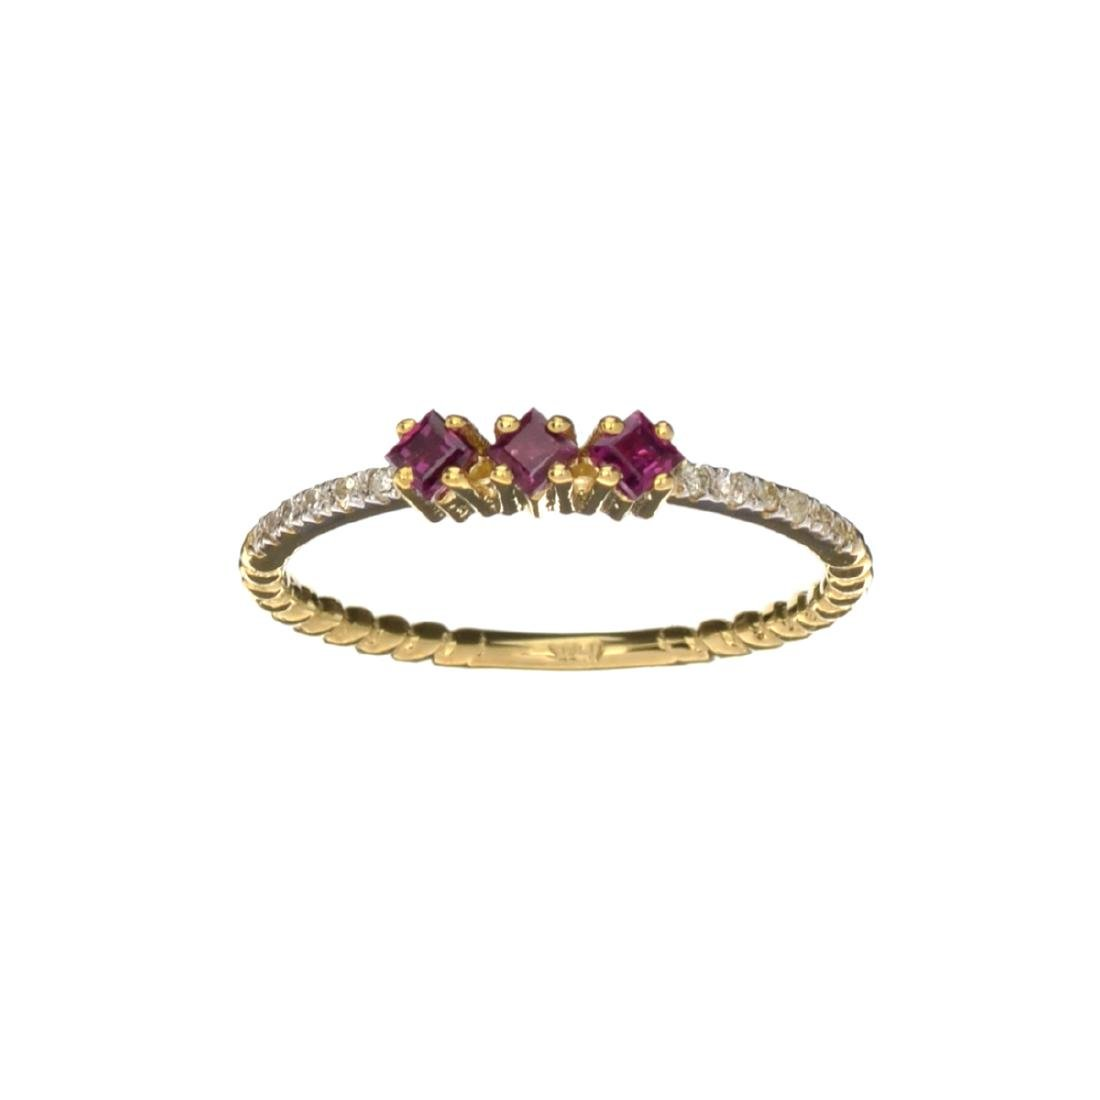 APP: 0.6k Fine Jewelry 14KT Gold, 0.20CT Ruby And